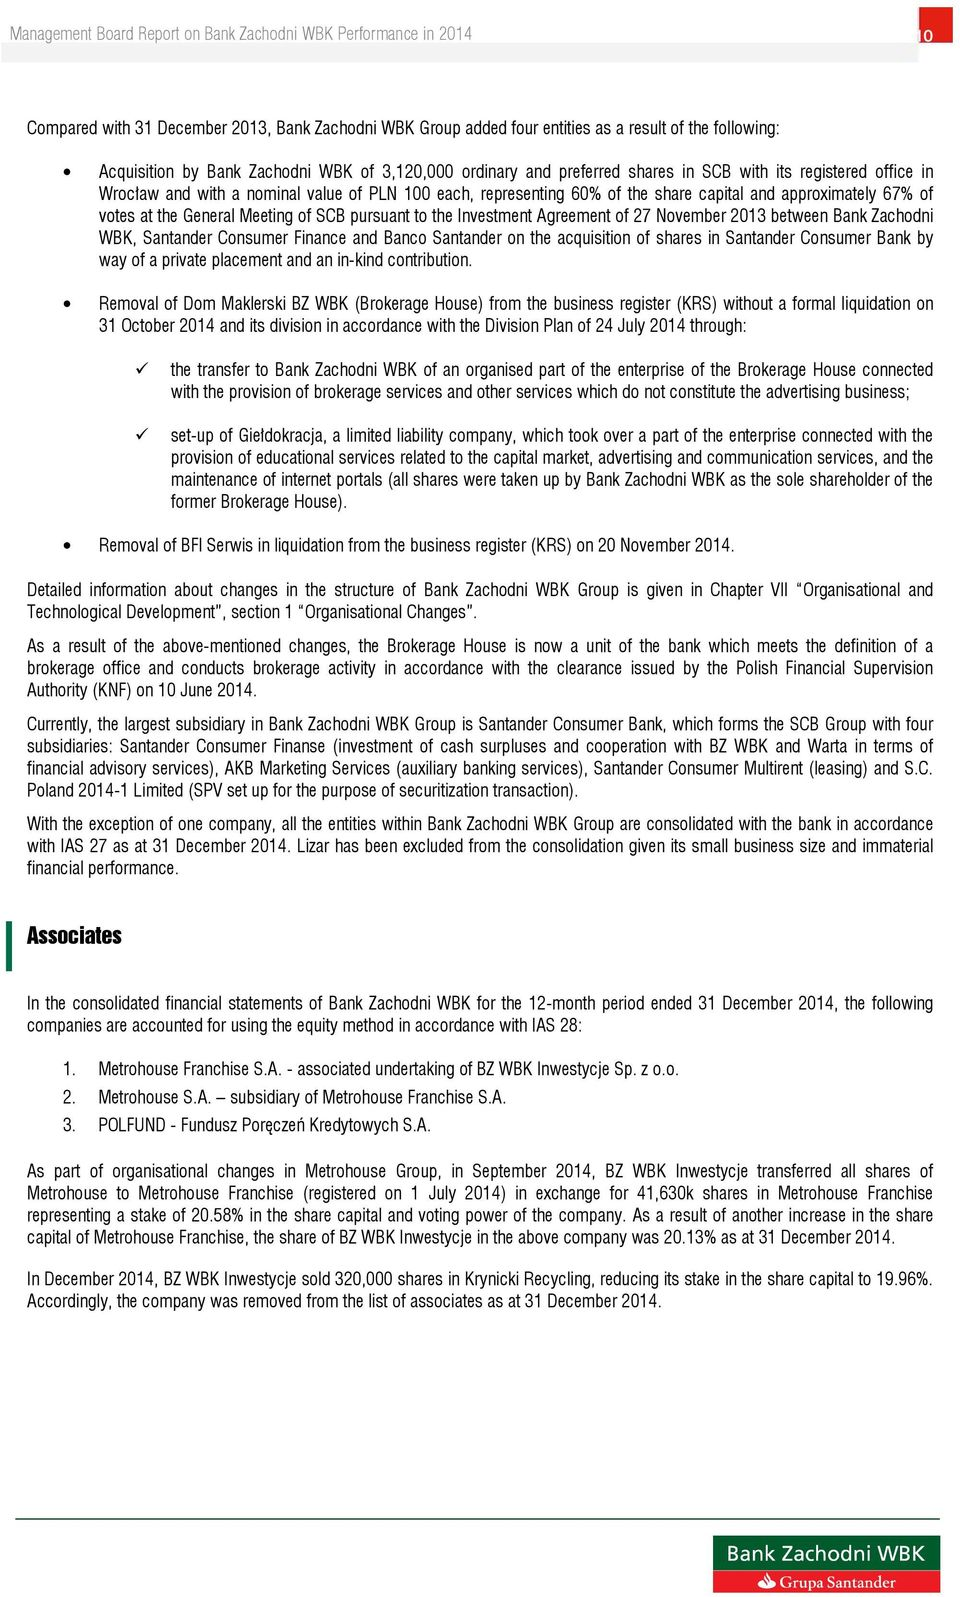 Investment Agreement of 27 November 2013 between Bank Zachodni WBK, Santander Consumer Finance and Banco Santander on the acquisition of shares in Santander Consumer Bank by way of a private